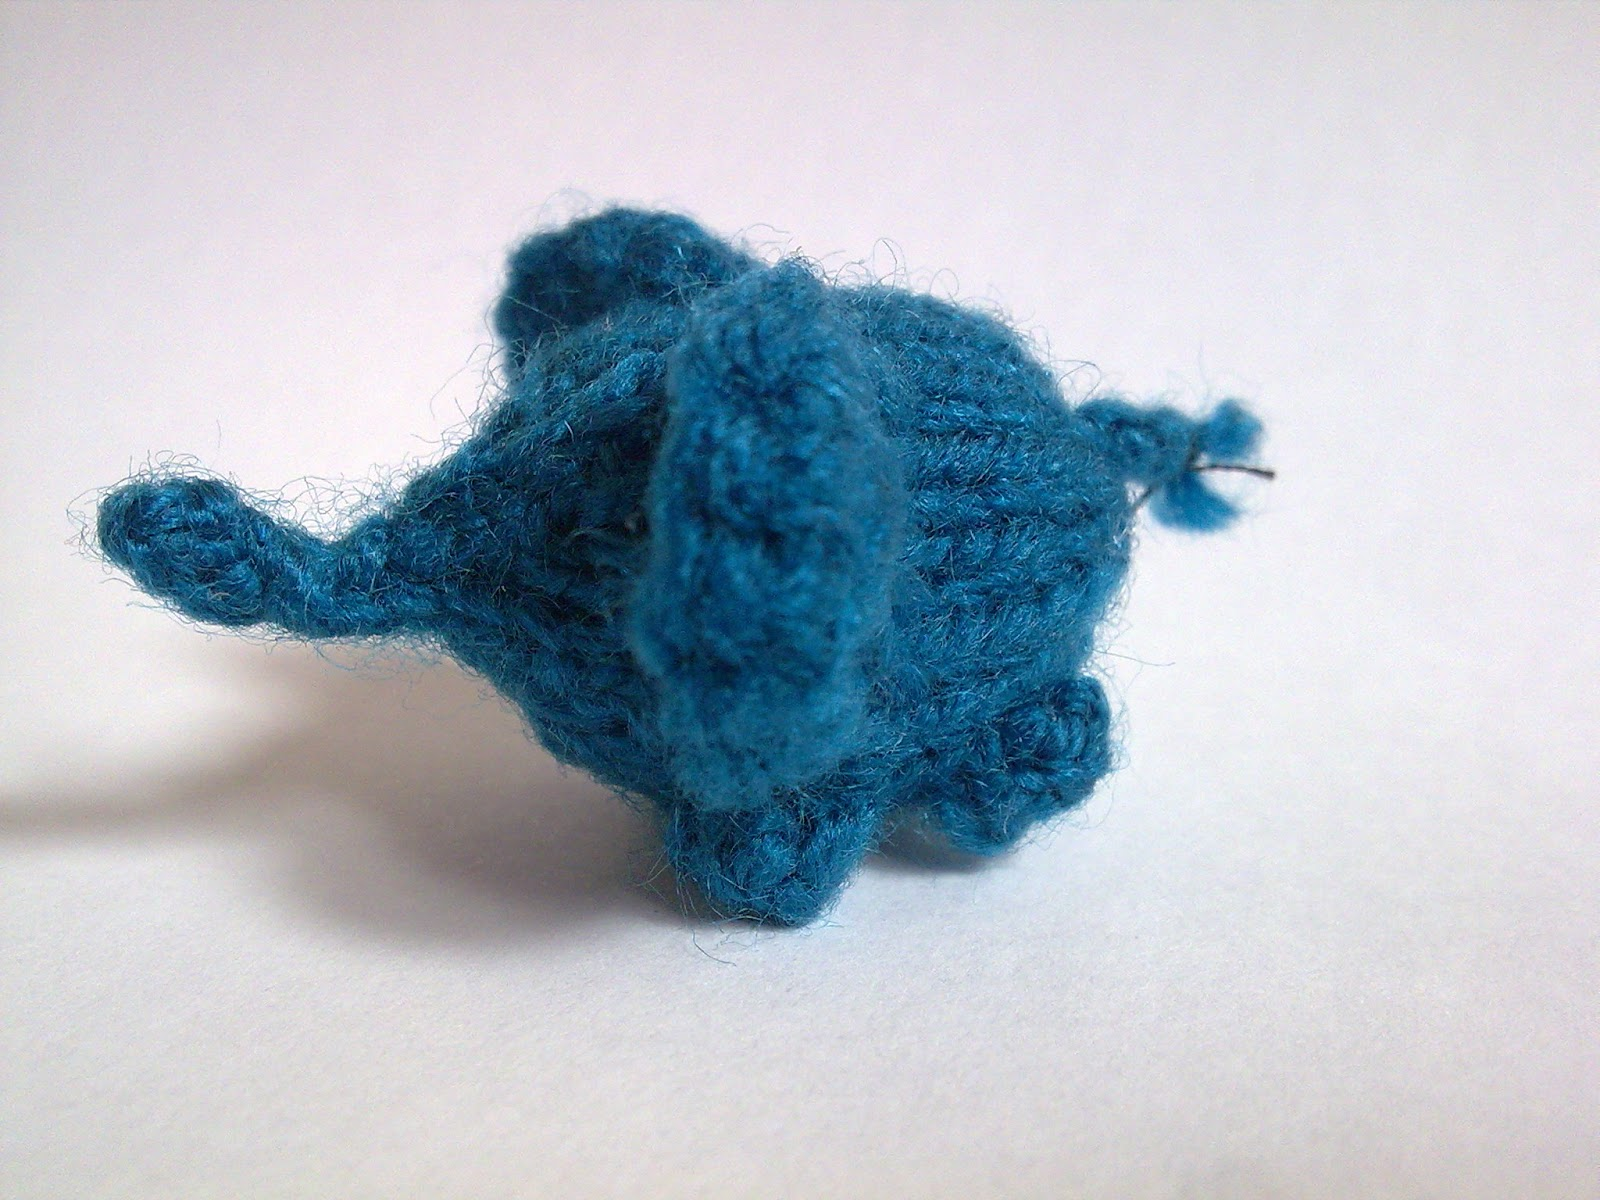 Knitting Kfbf : The nimble mouse teeny tiny elephant